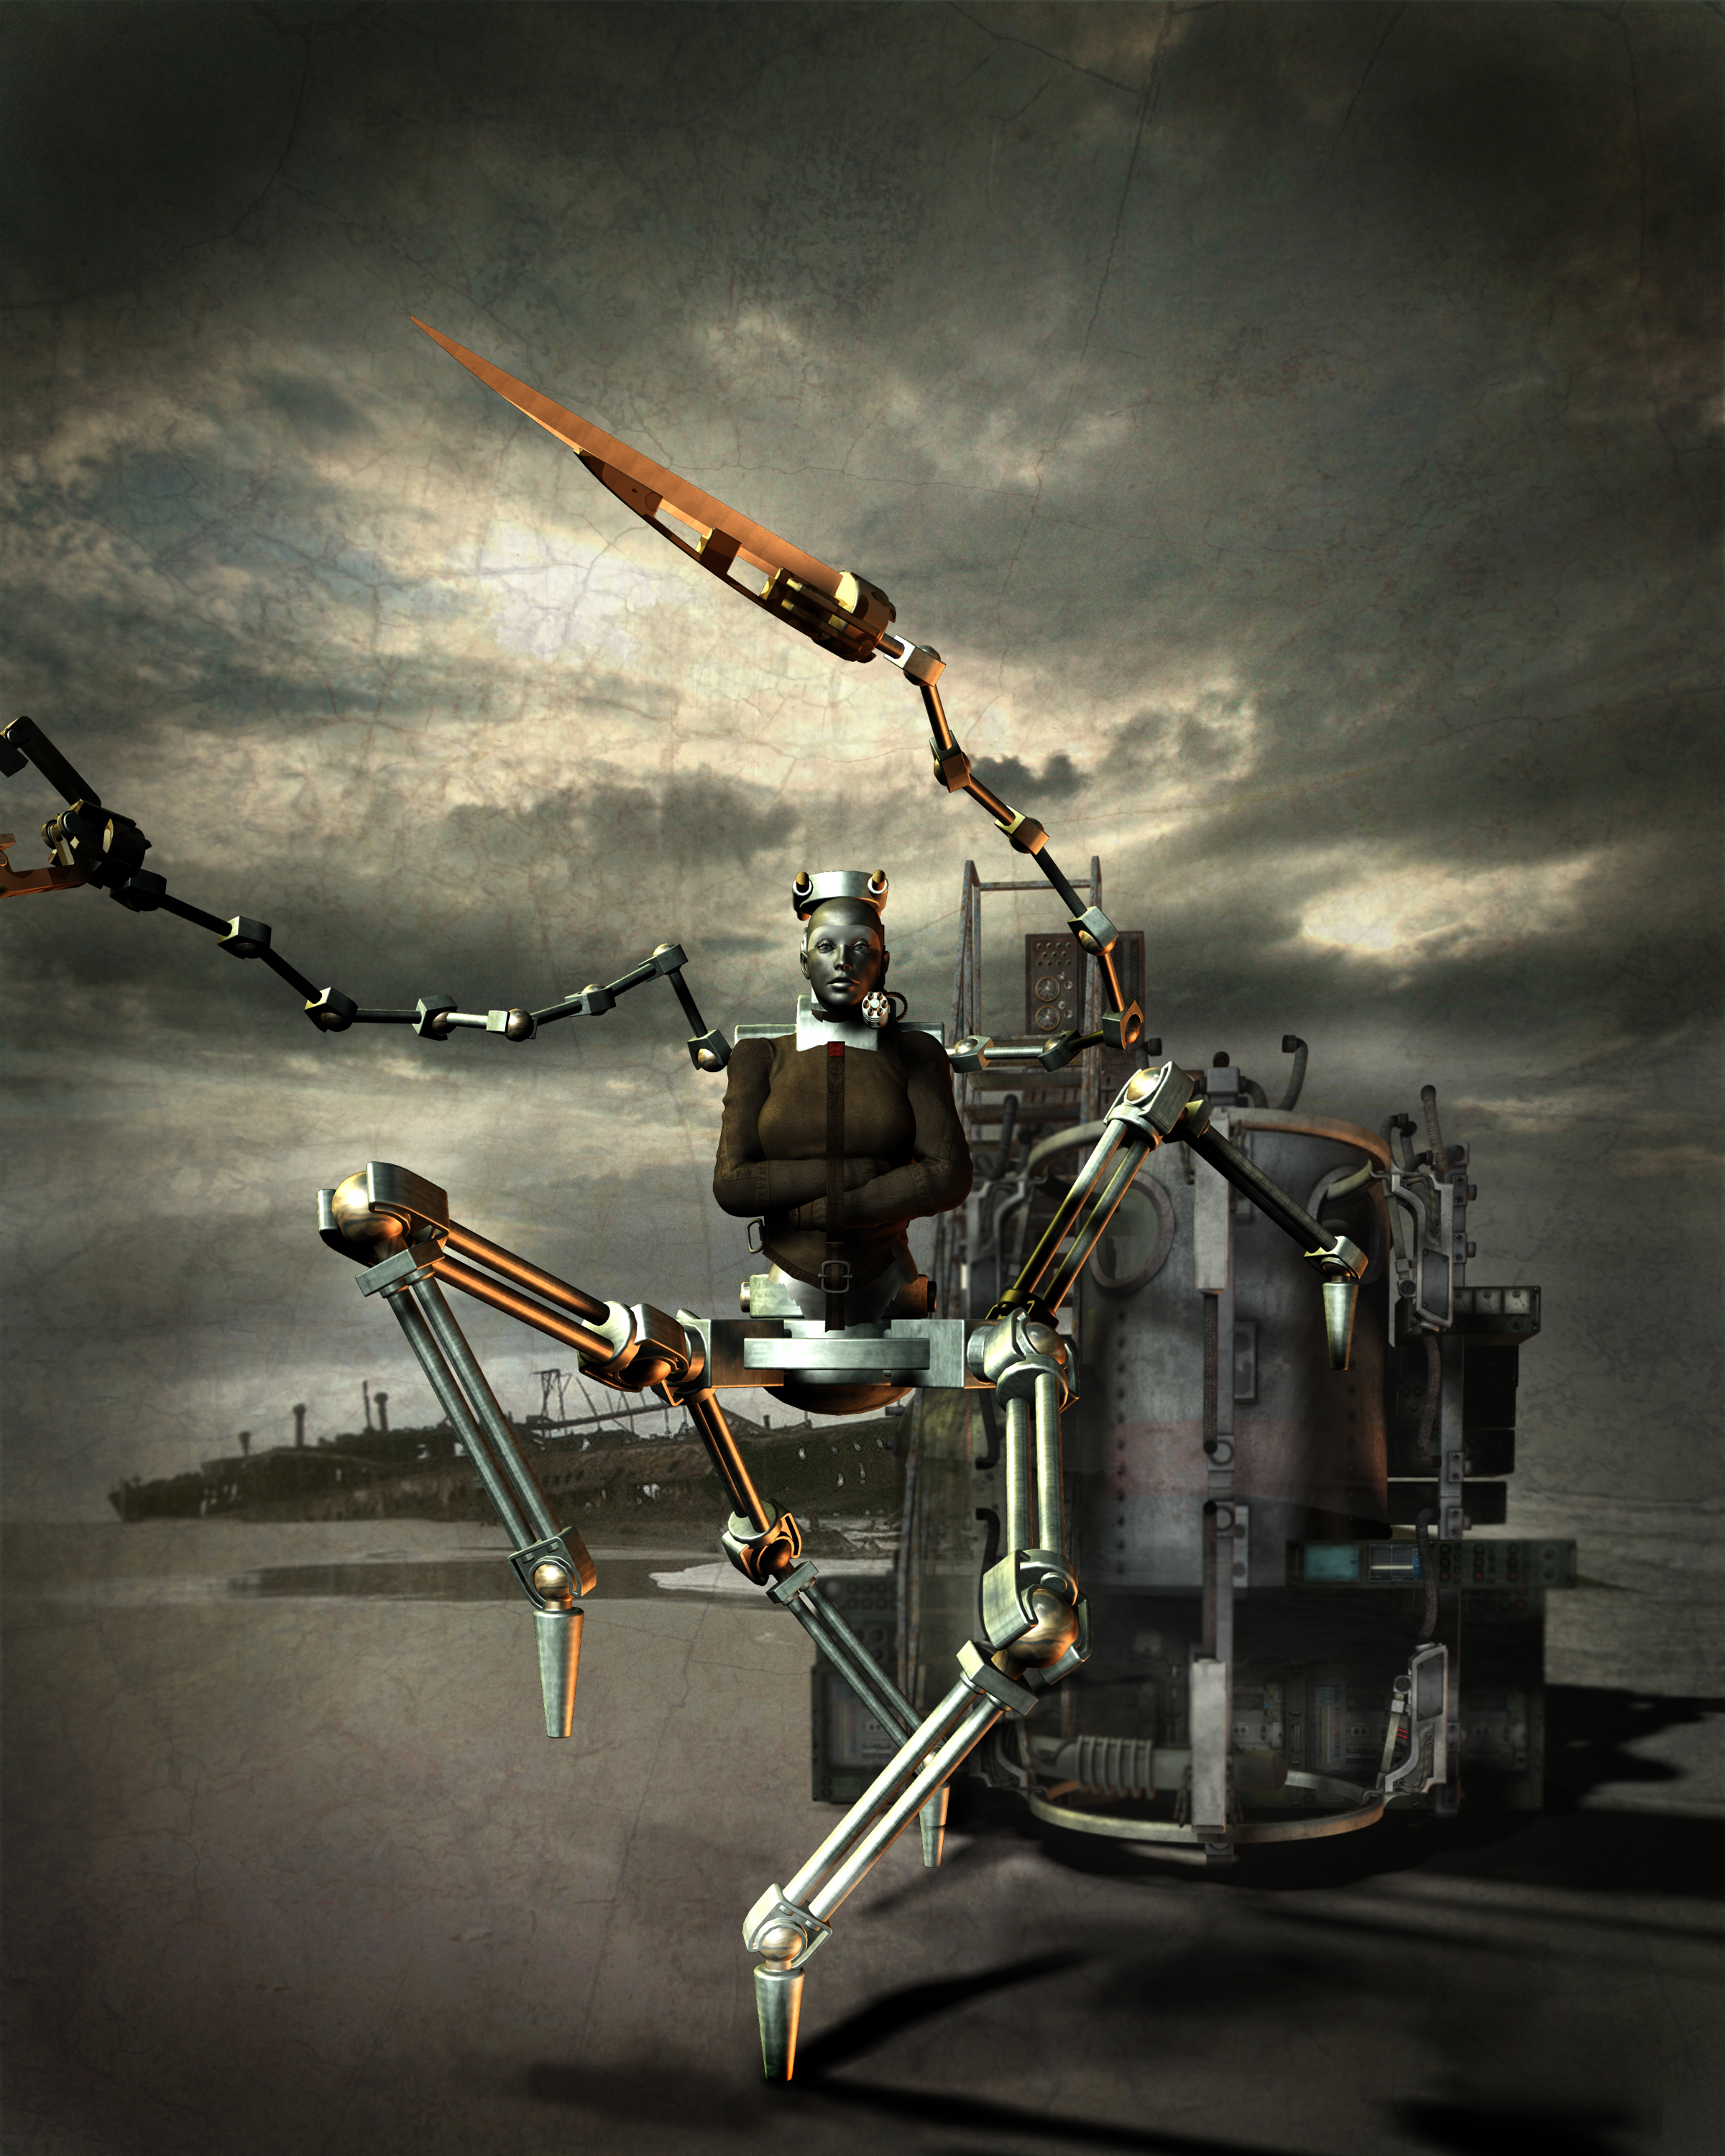 Bio-mech hybrid of straitjacketed metallic-skinned woman with 4 mechanical legs and 2 waving upper limbs, one with grasper-claw, one with blade, striding spider-like away from large steampunk pressure tank assemblage on windswept beach. Rusted shipwreck in background.